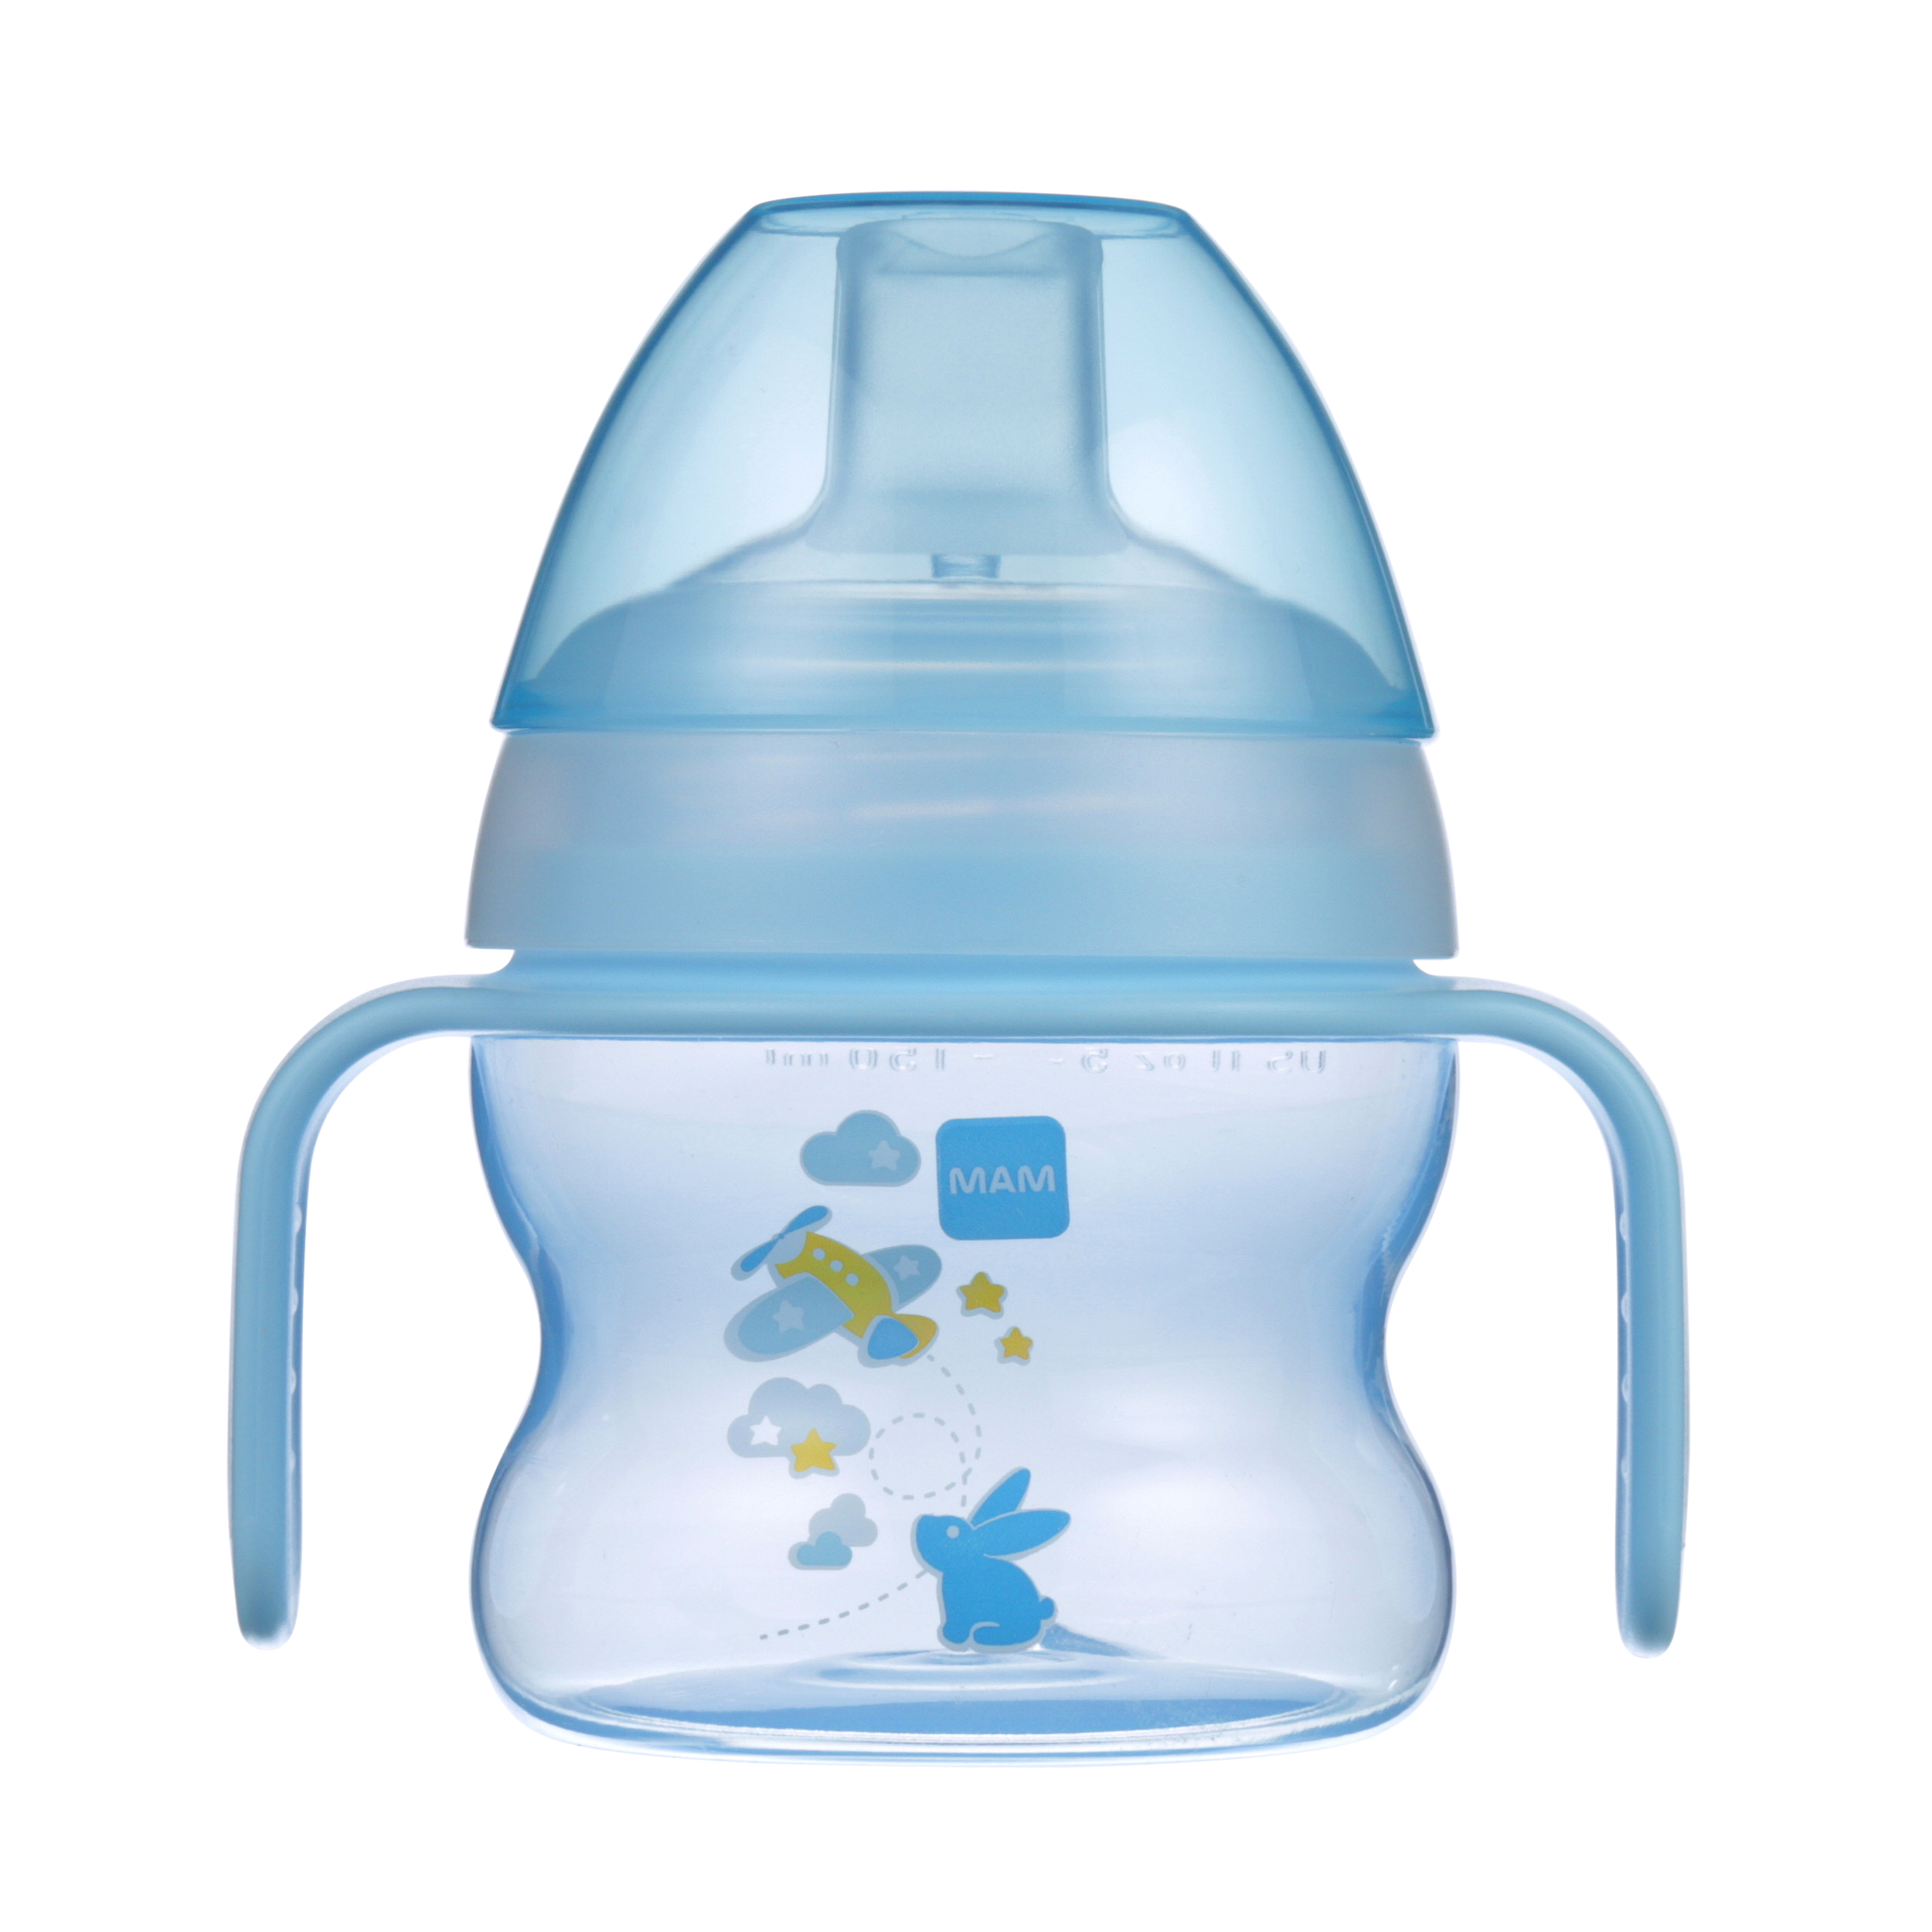 MAM Starter Cup with extra soft spout, 5 oz, 1-Count, Boy by MAM